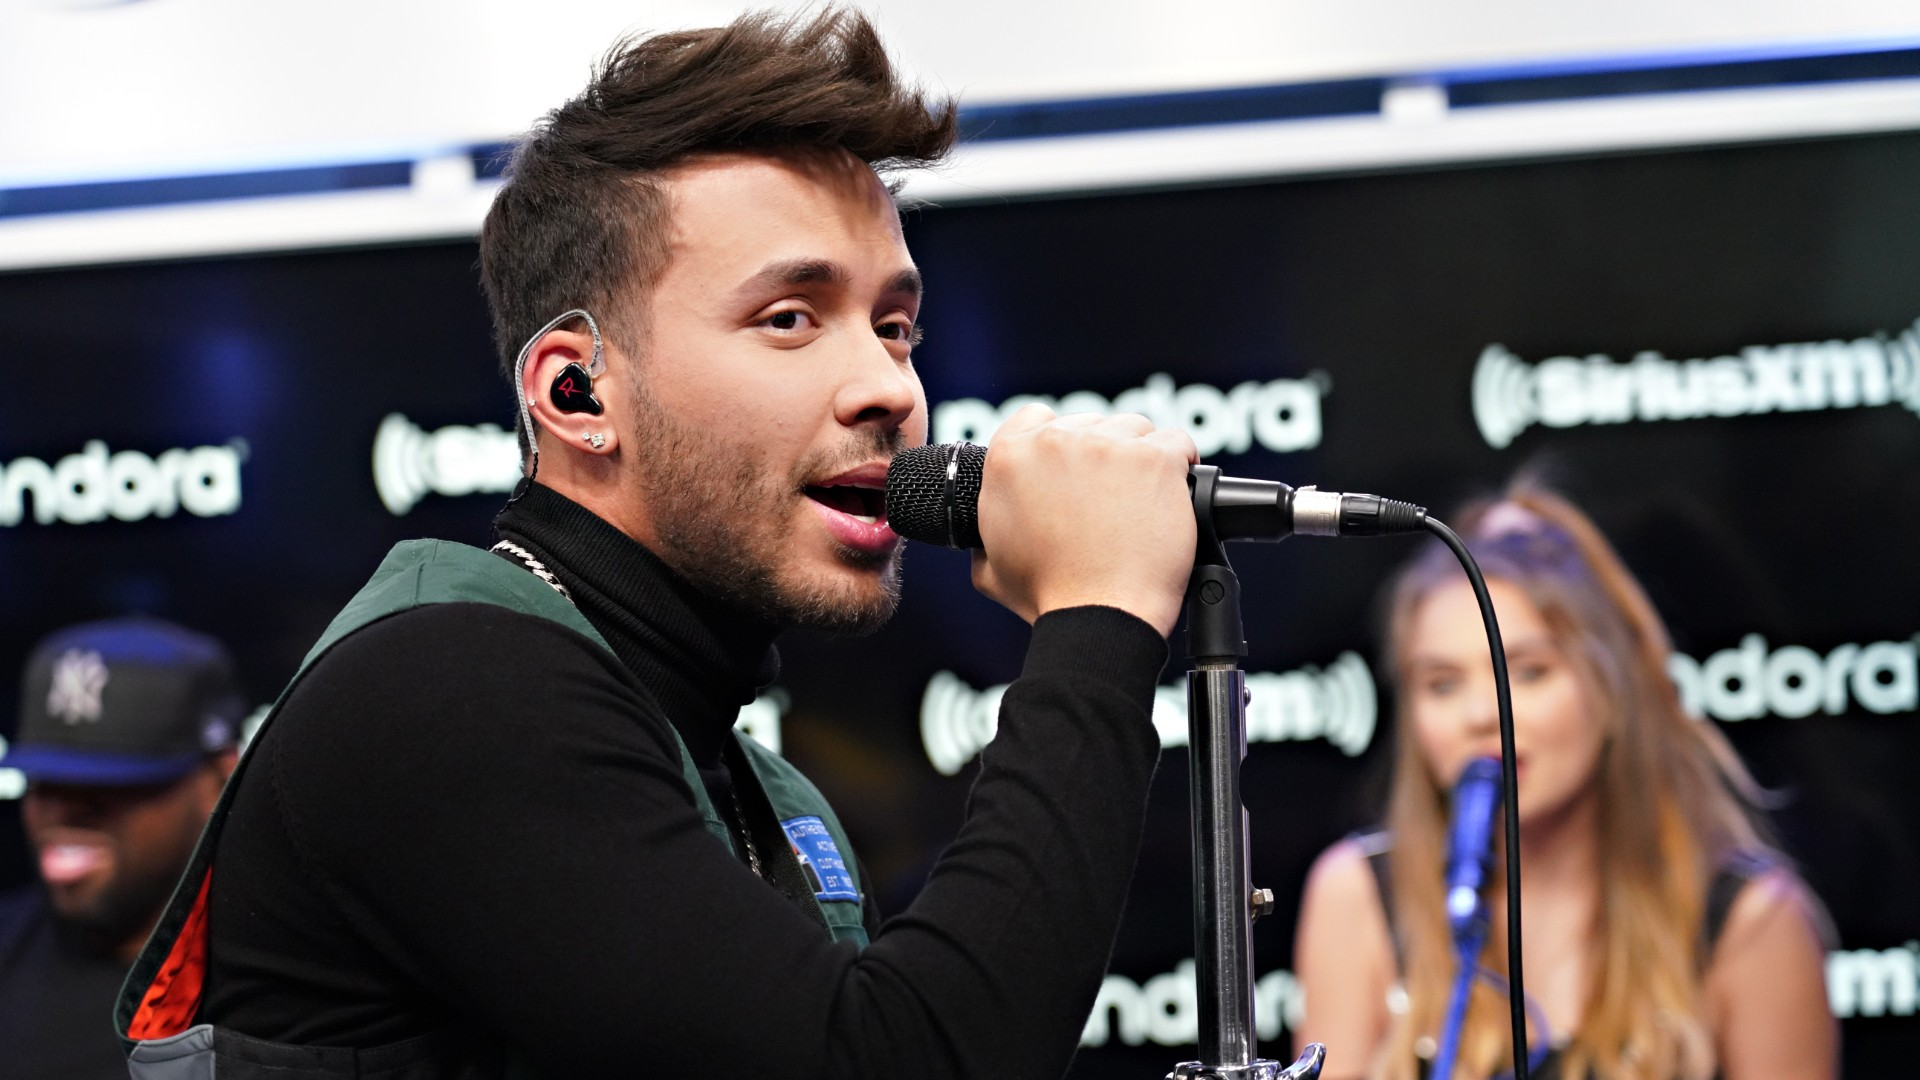 Prince Royce performs on SiriusXM's Caliente channel at the SiriusXM Studios on February 14, 2020 in New York City. (Photo by Cindy Ord/Getty Images for SiriusXM)